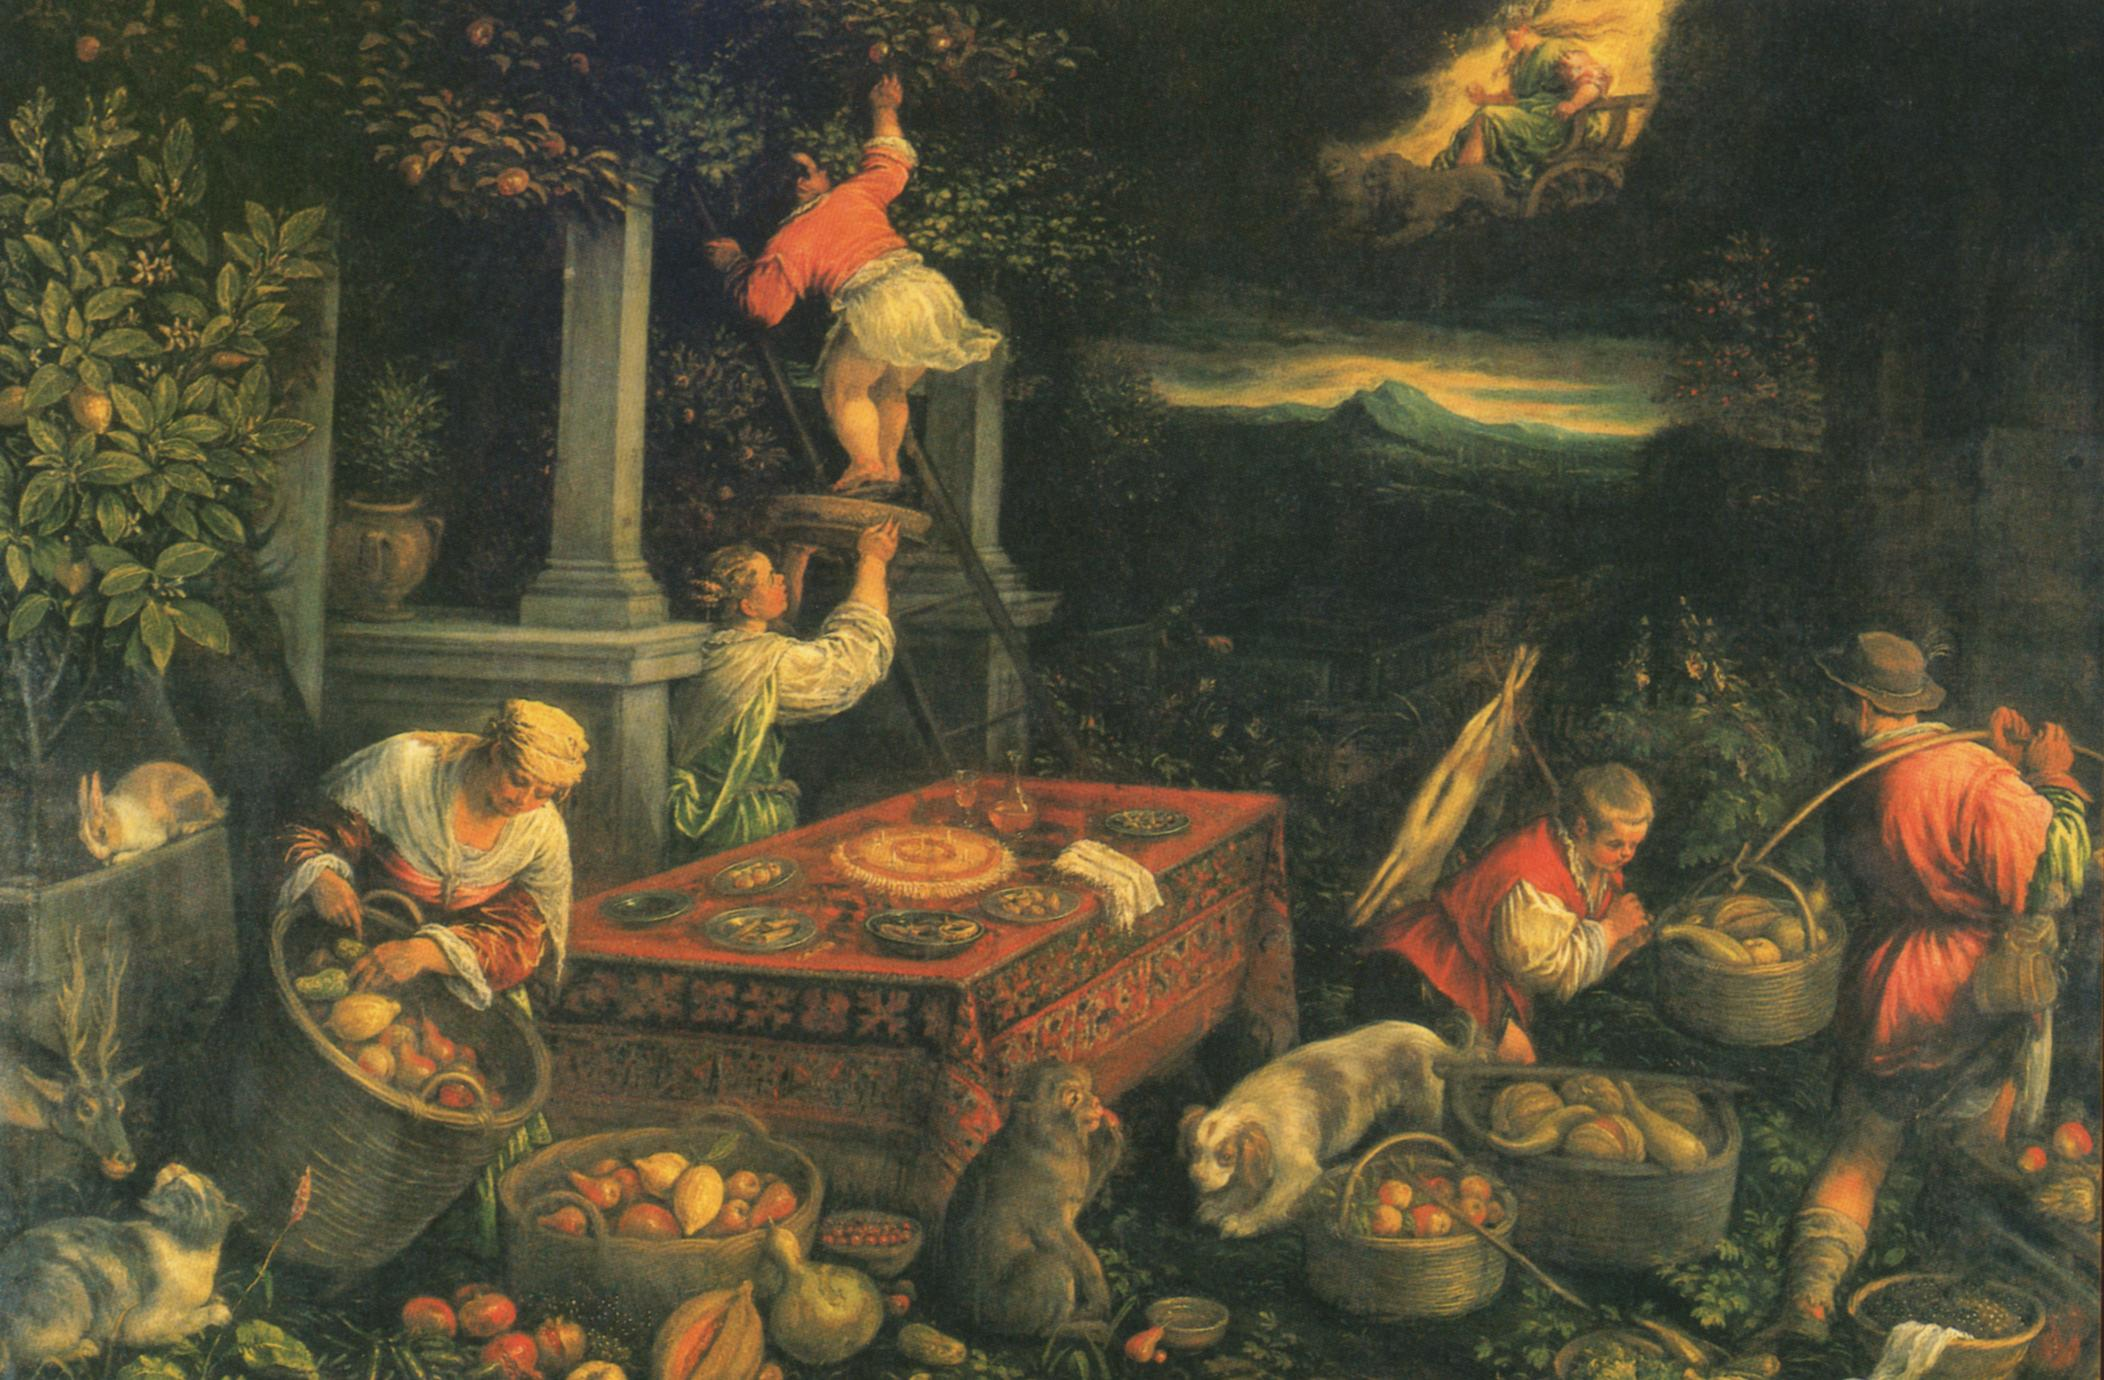 Allegory of the Element Earth